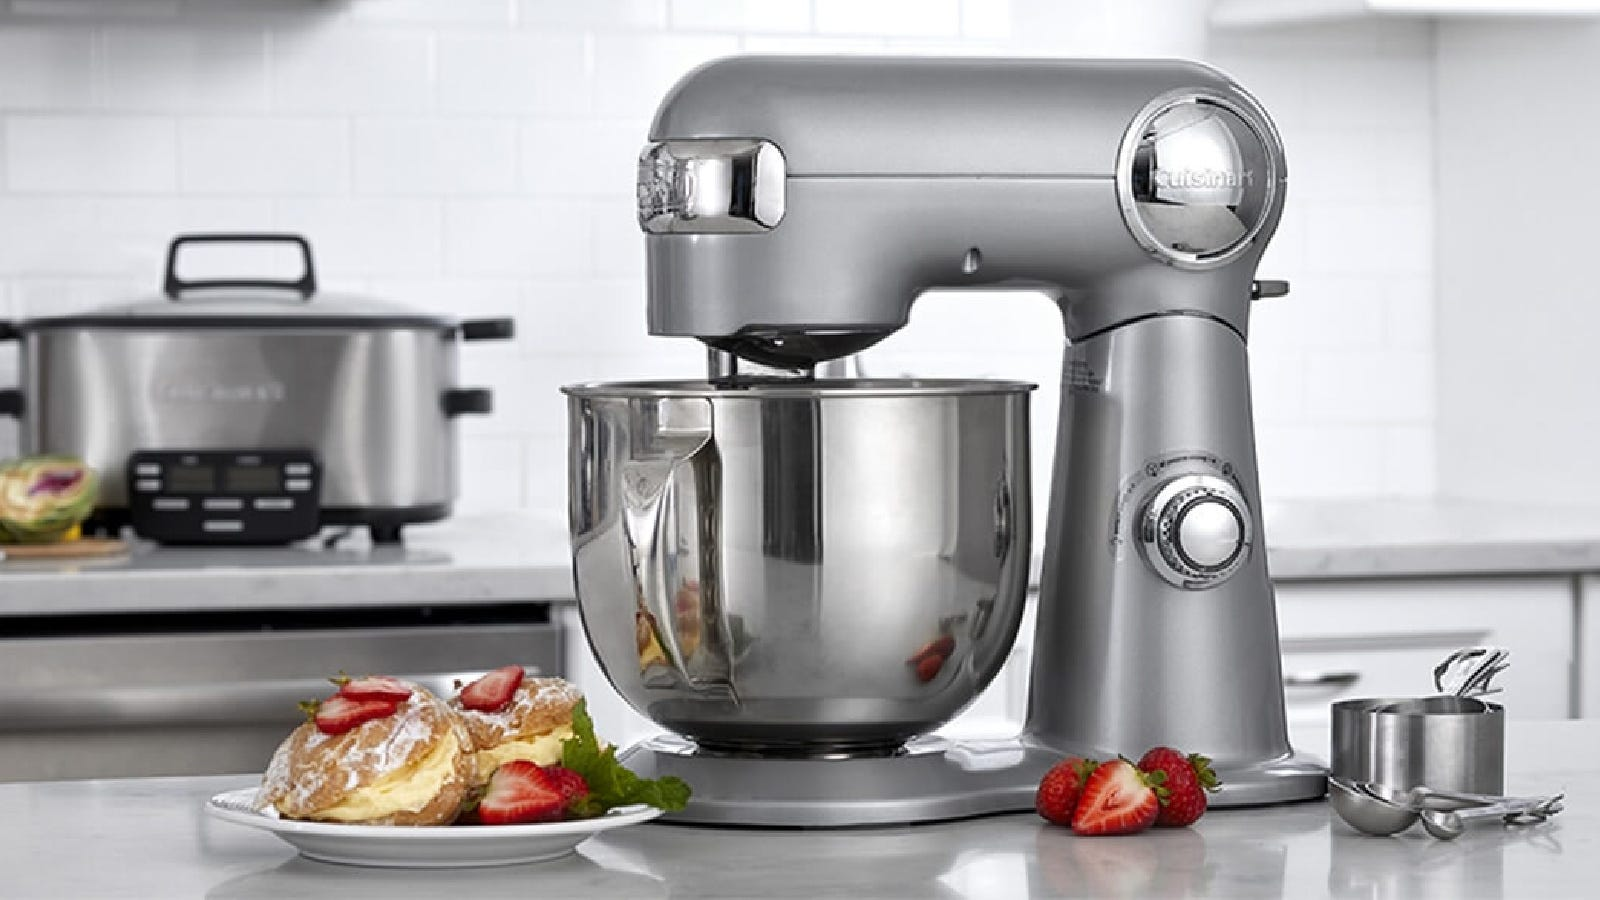 A Cuisinart stand mixer with gorgeous pastries next to it.